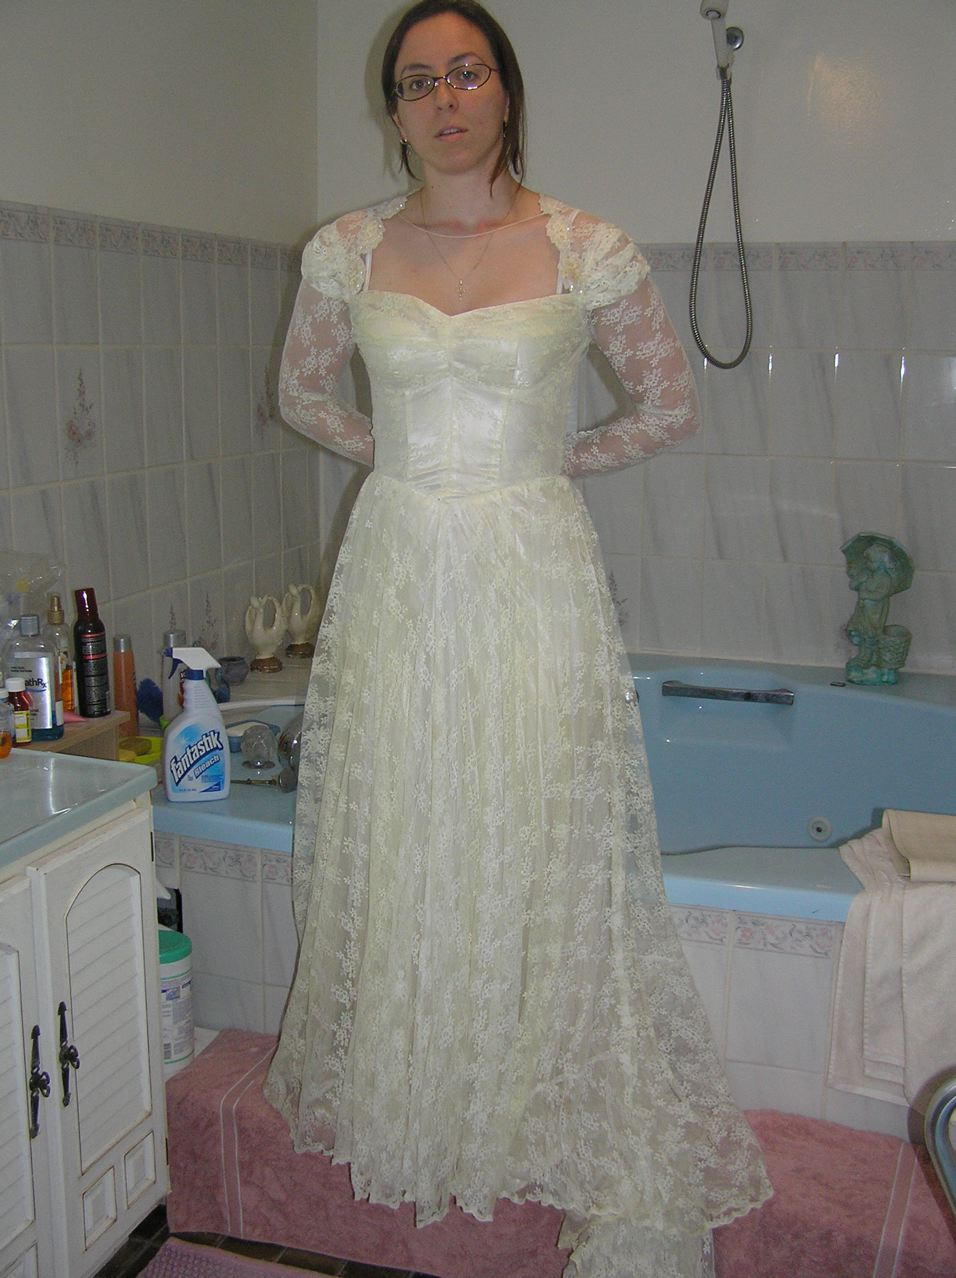 Grandmother Dresses for Grandsons Wedding http://whenhoyametsaxa.blogspot.com/2010/05/wedding-dress-wednesday-my-grandmothers.html